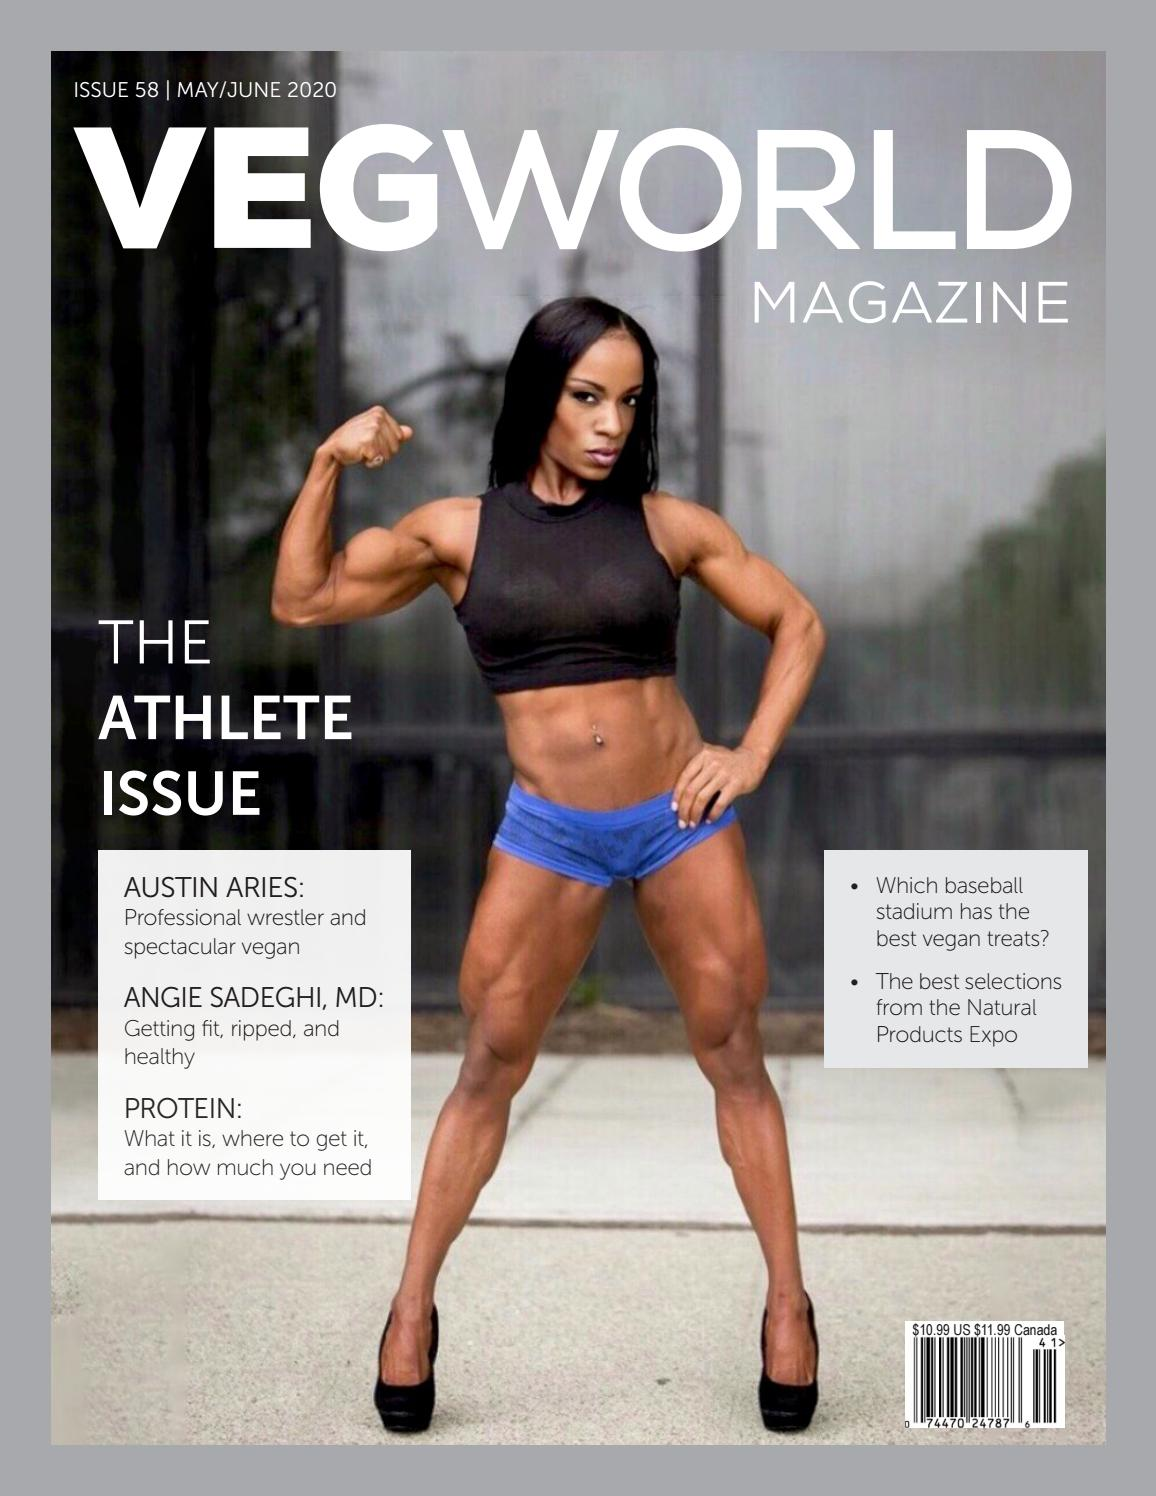 Vegworld 58 The Athlete Issue By Vegworldmagazine Issuu